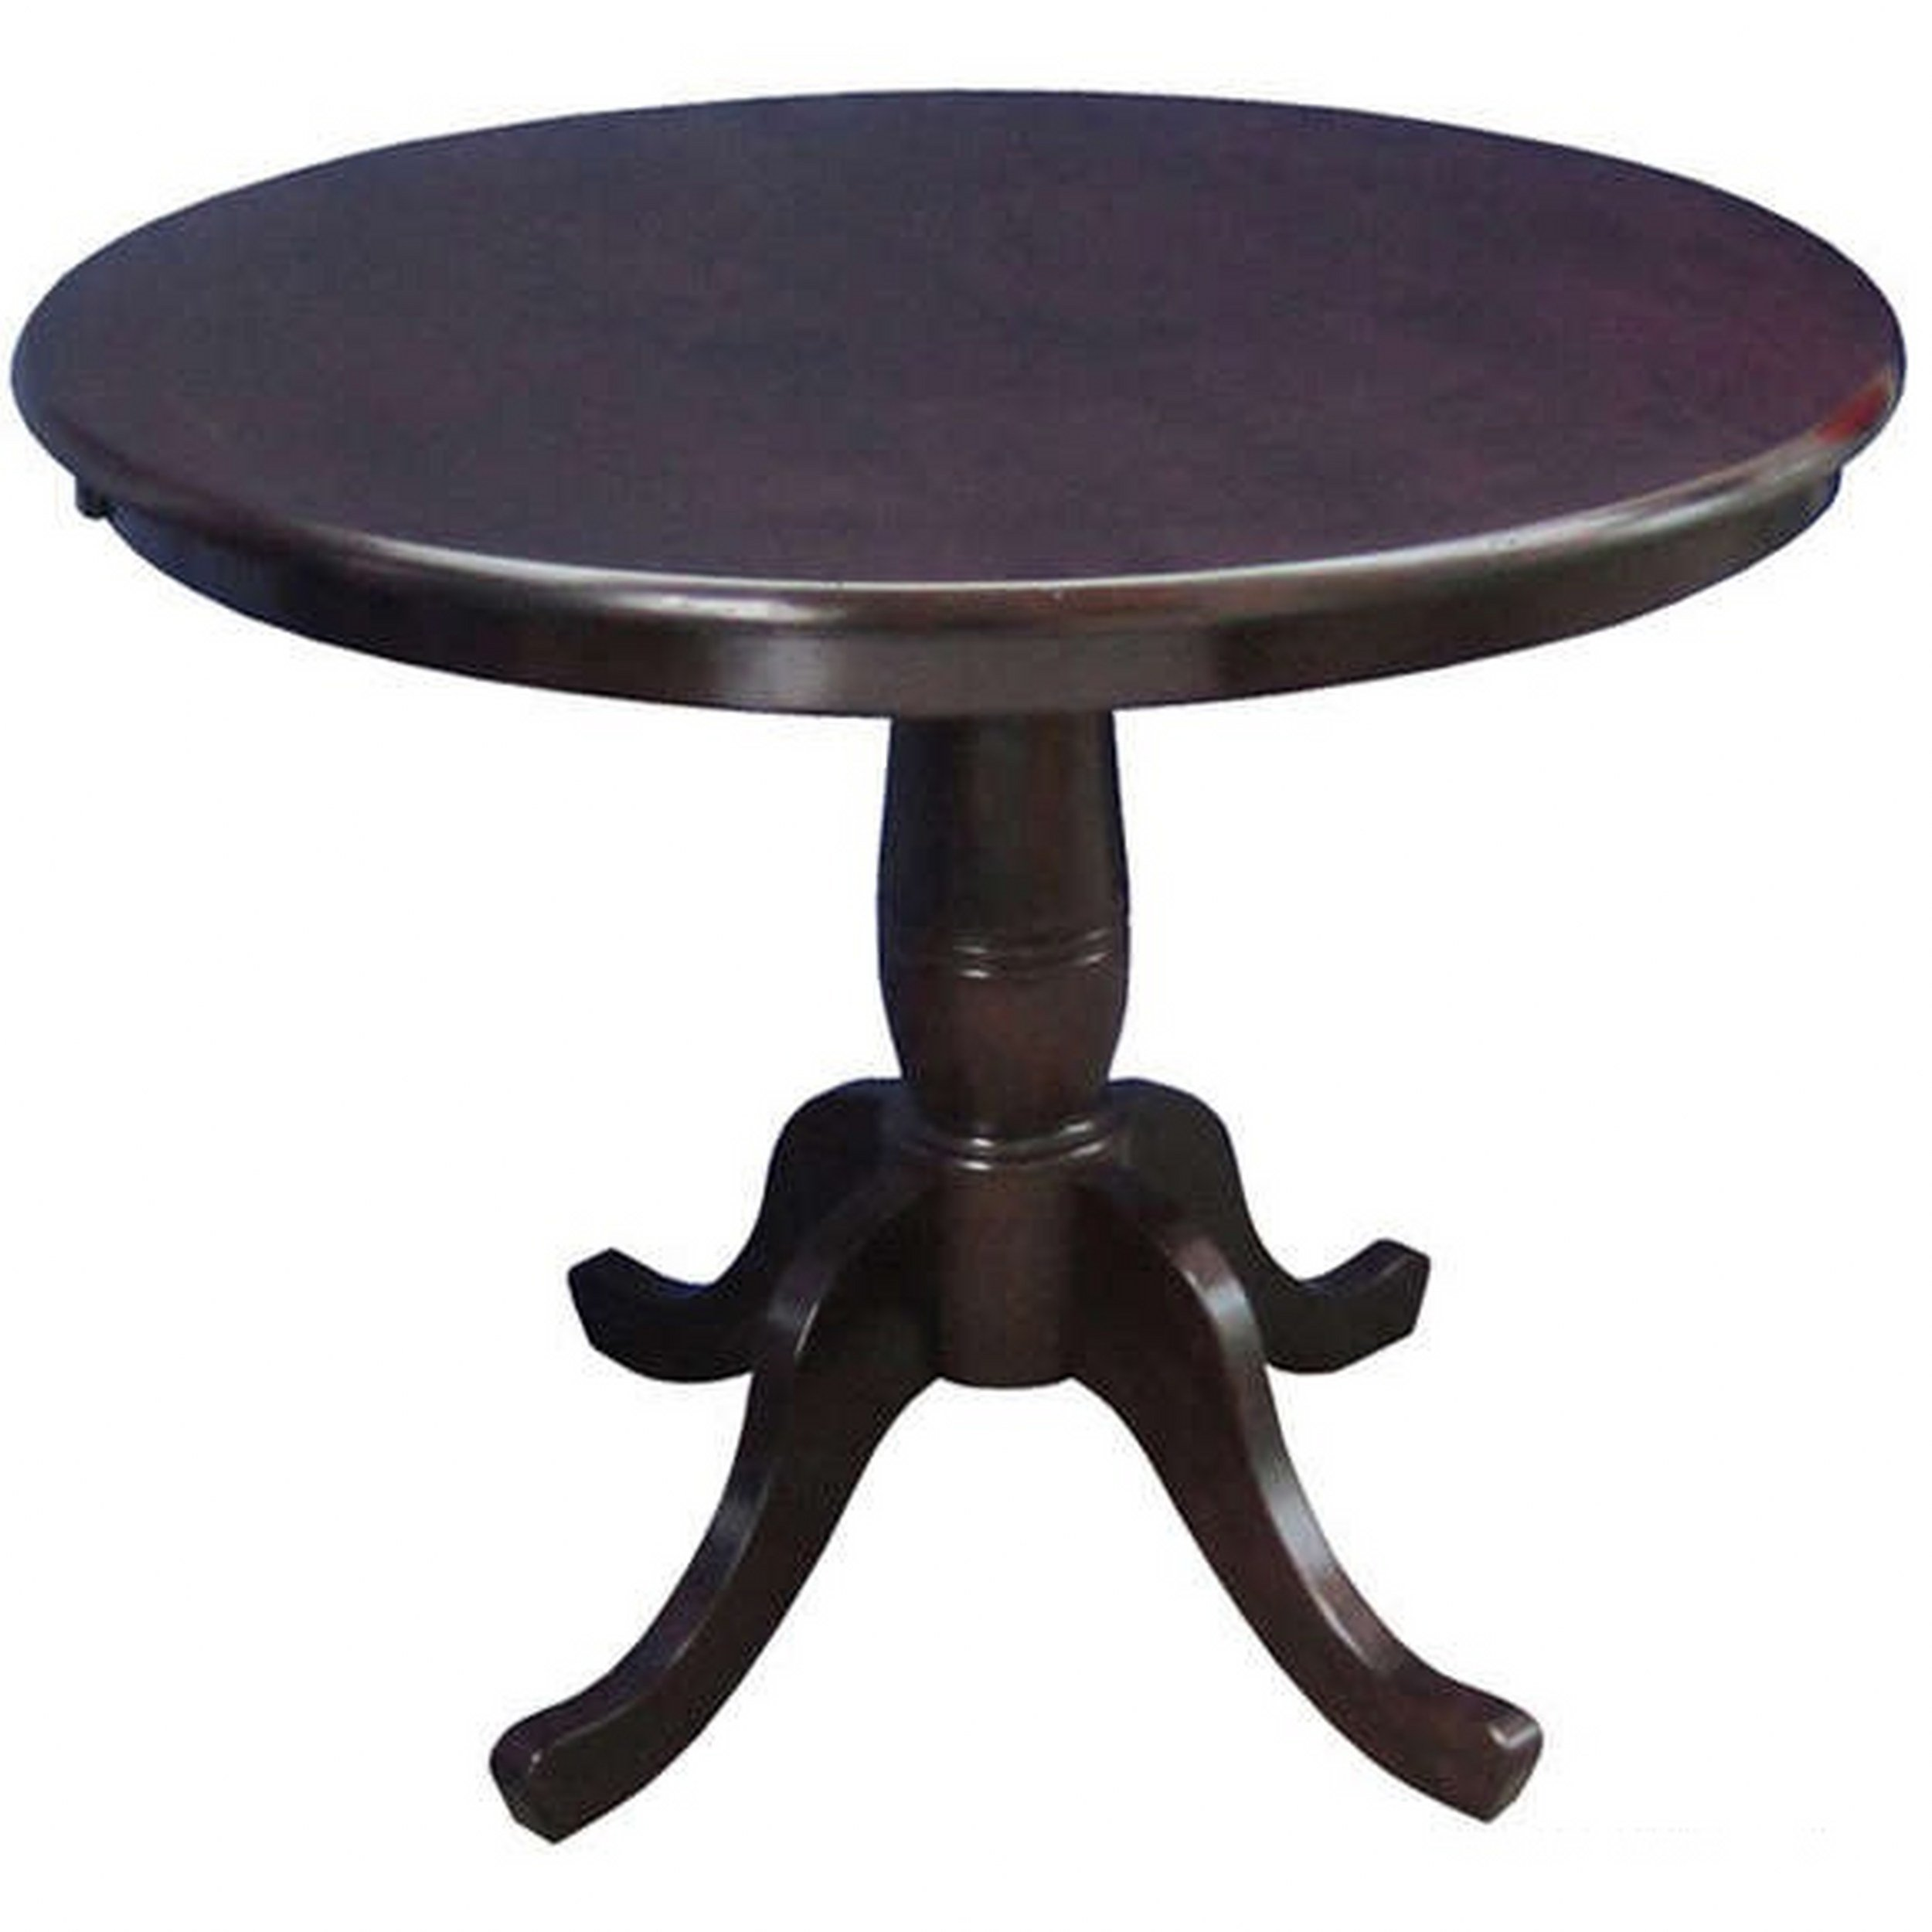 Get Quotations Modhaus Living Country Style 30 Inch Wood Round Top Pedestal Base Dining Table Includes